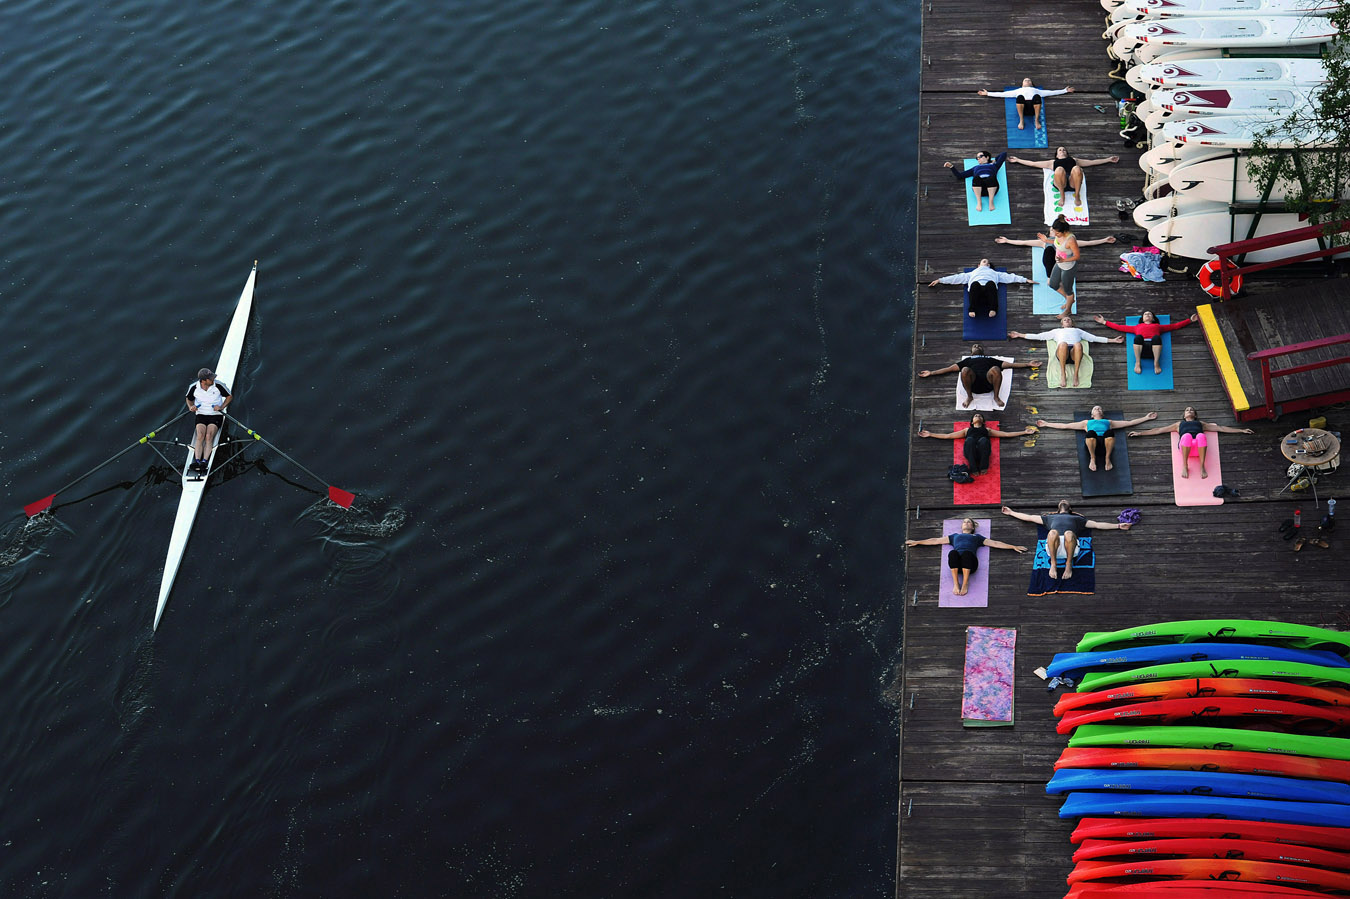 A rower glides by as people take part in {quote}Yoga on the Docks{quote} at Key Bridge Boathouse on Saturday June 07, 2014 in Washington, DC.  The morning yoga session will run on Saturdays for the next several months.  (Photo by Matt McClain/ The Washington Post)